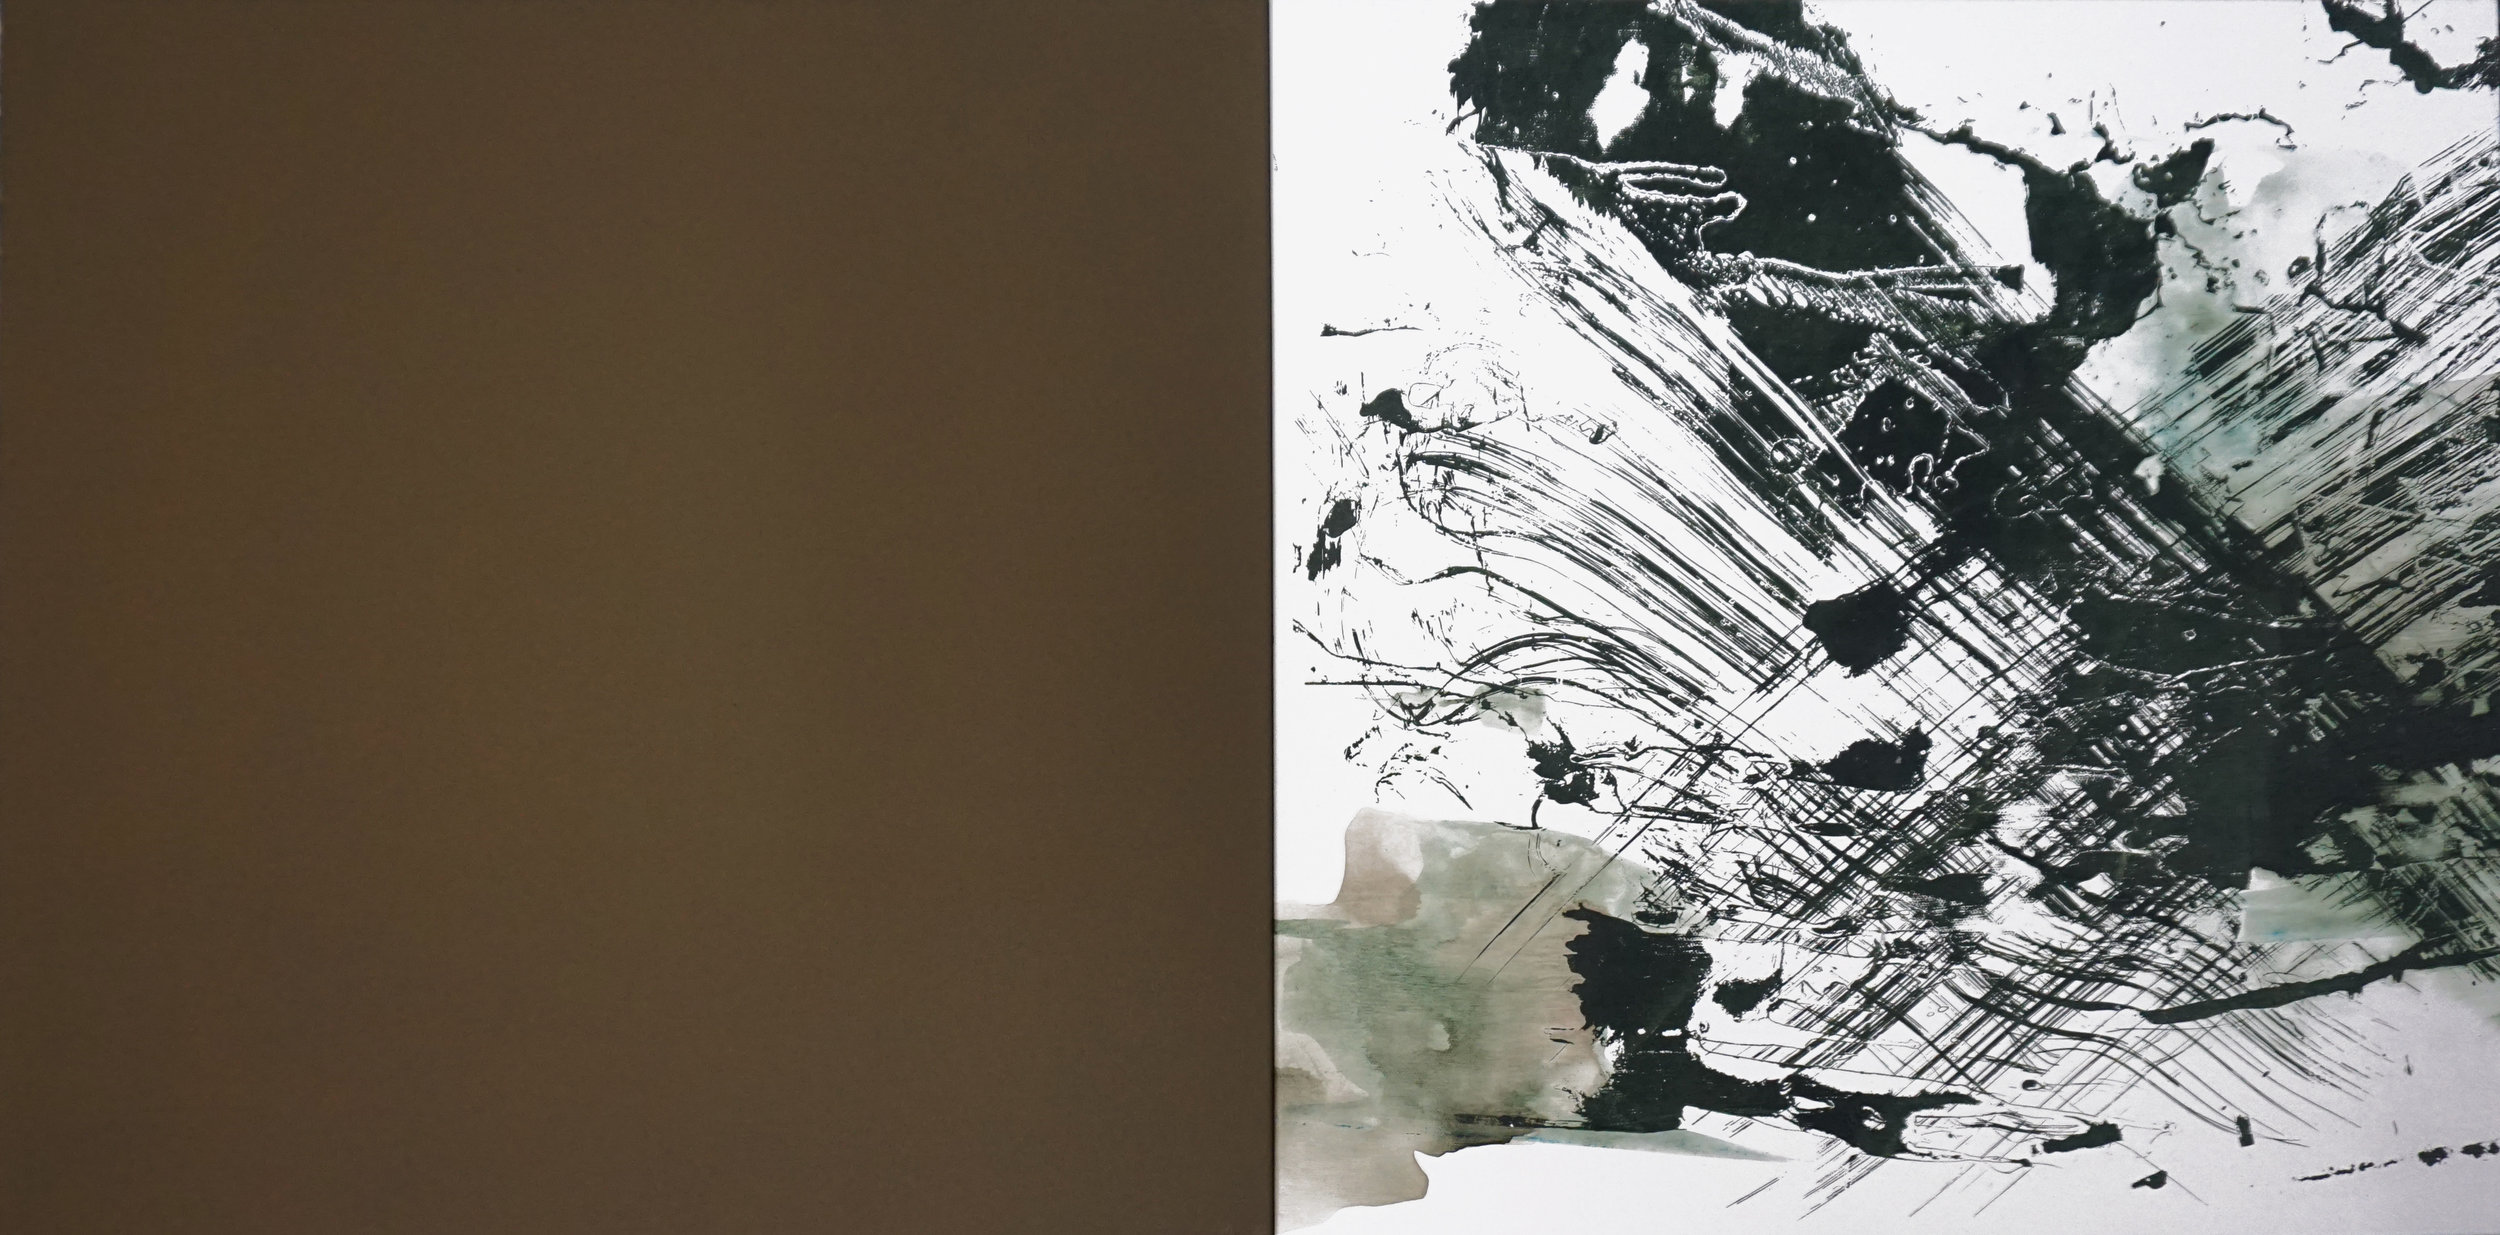 Forest Wind,  55 x 110 cm, silkscreen paint and ink on canvas, 2017, Private Collection